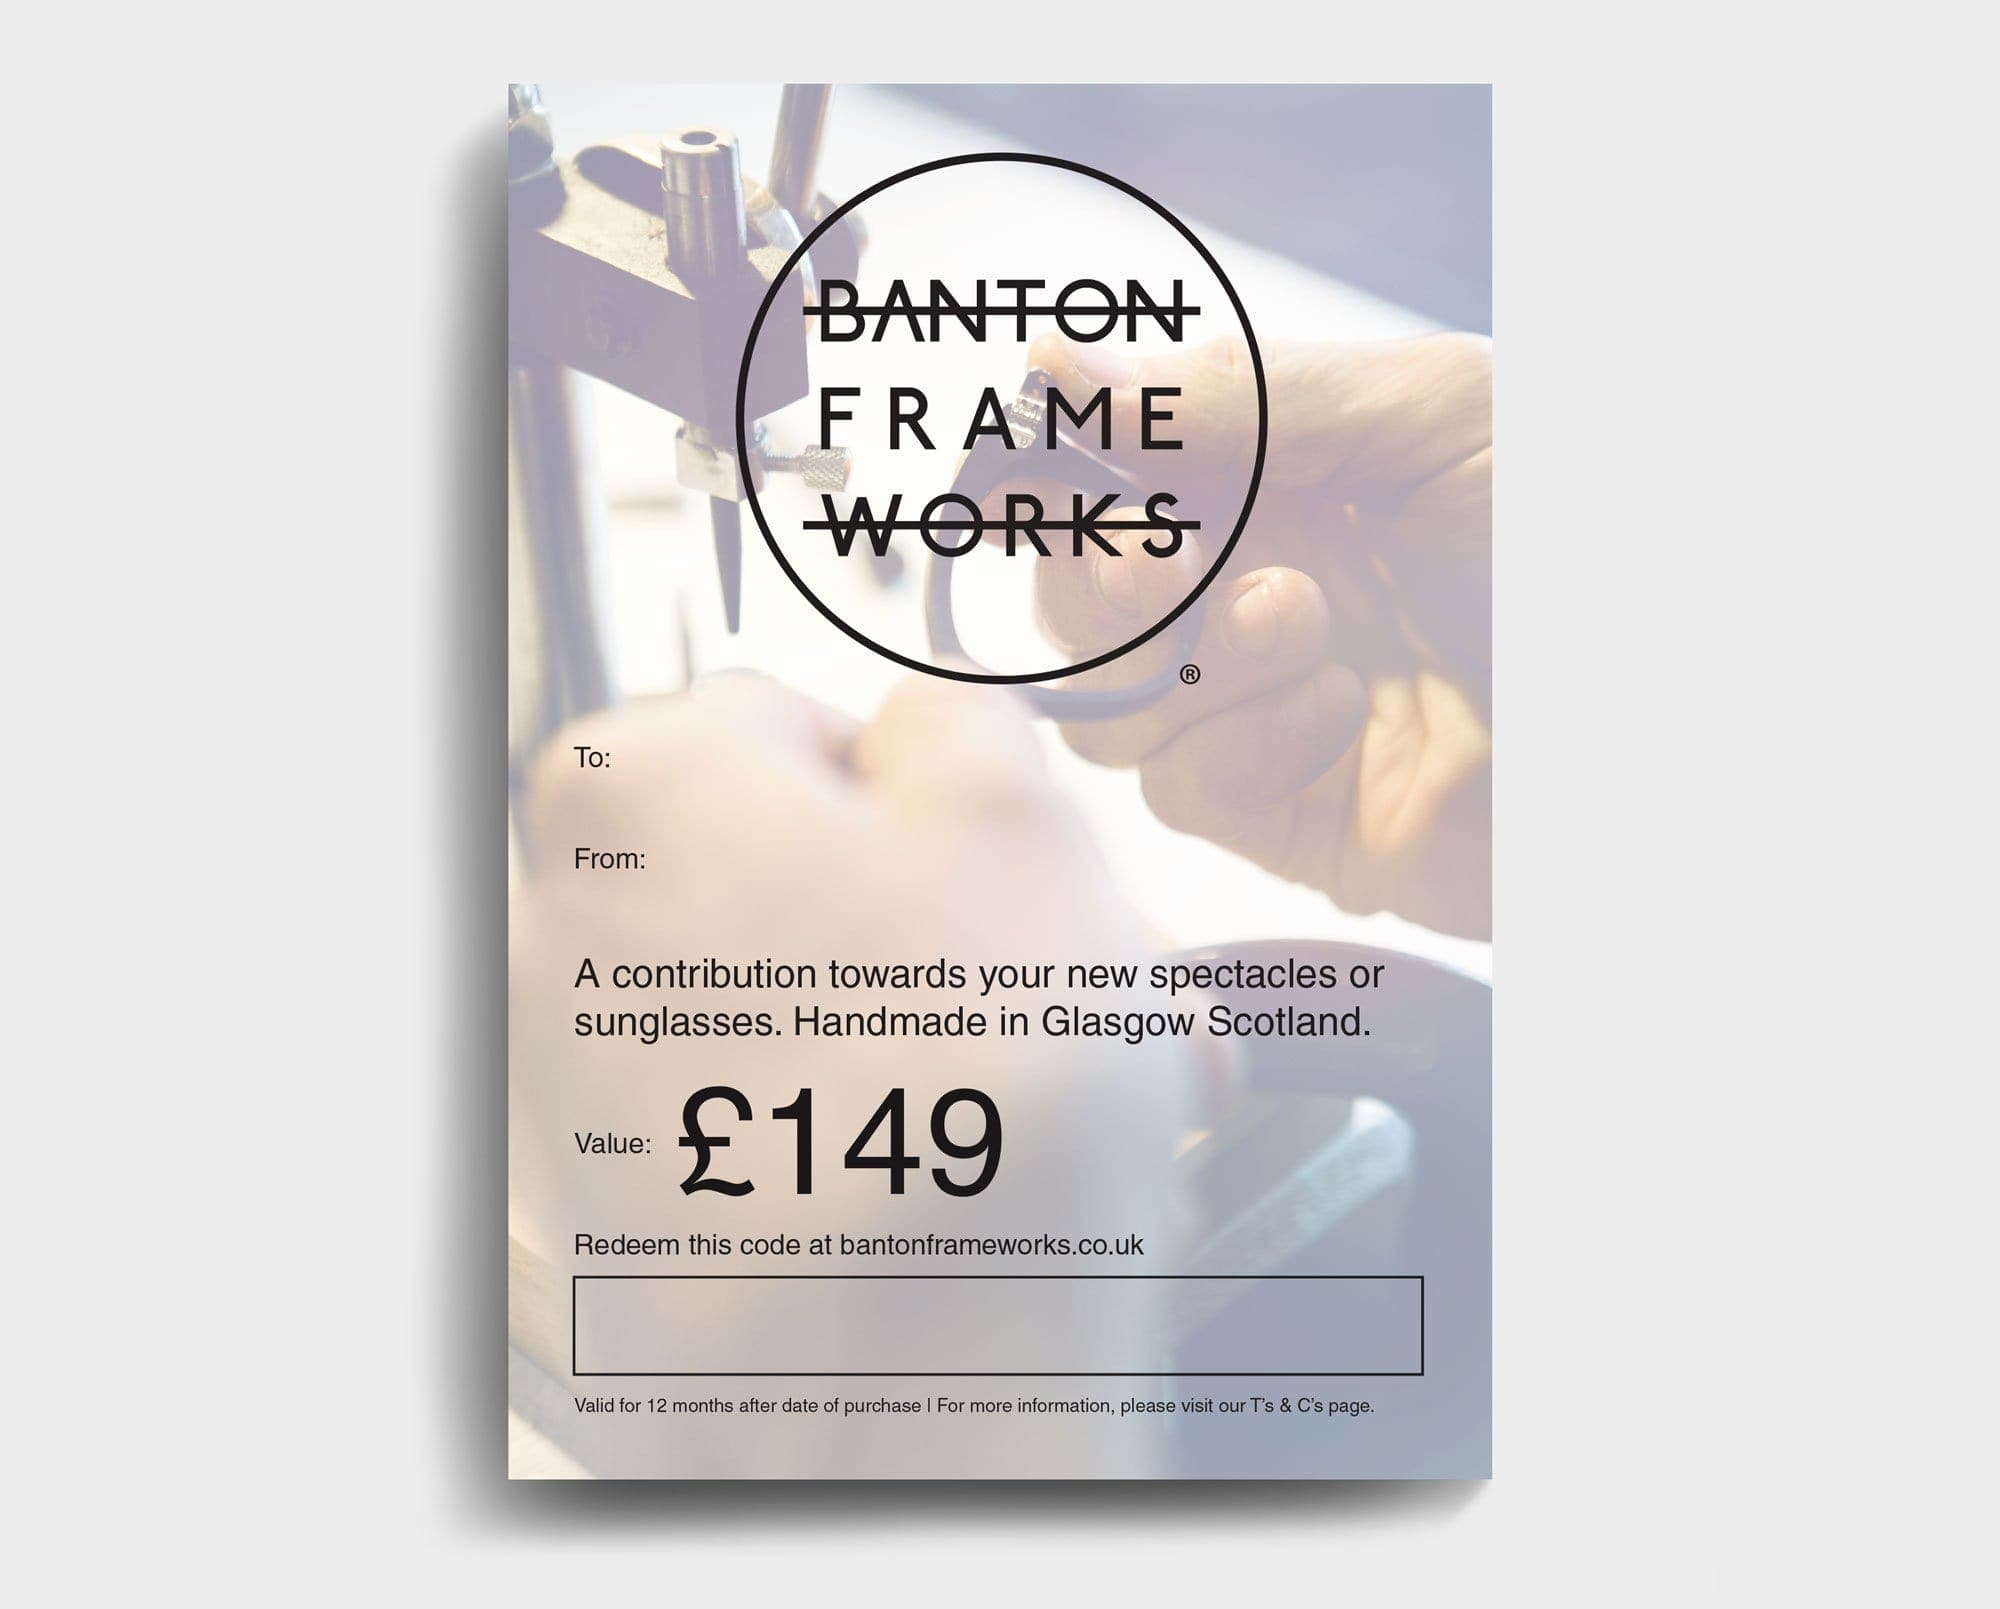 Banton Frameworks Gift Card worth 149 GBP